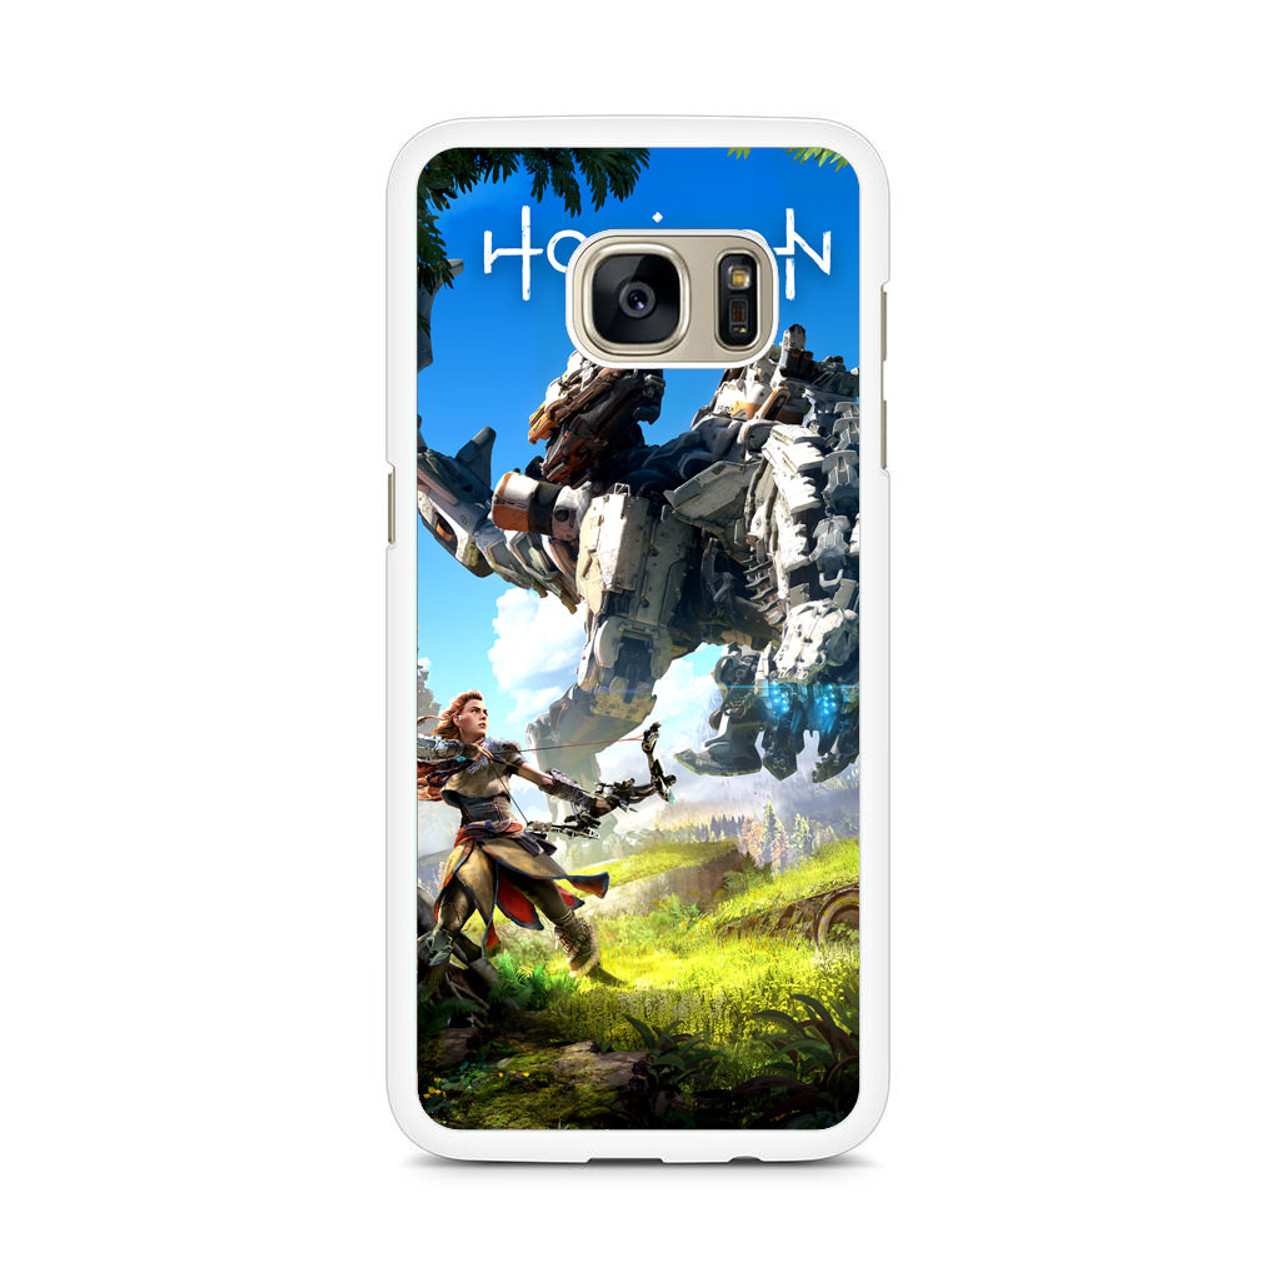 Horizon Zero Dawn Wallpaper Samsung Galaxy S7 Edge Case Jocases